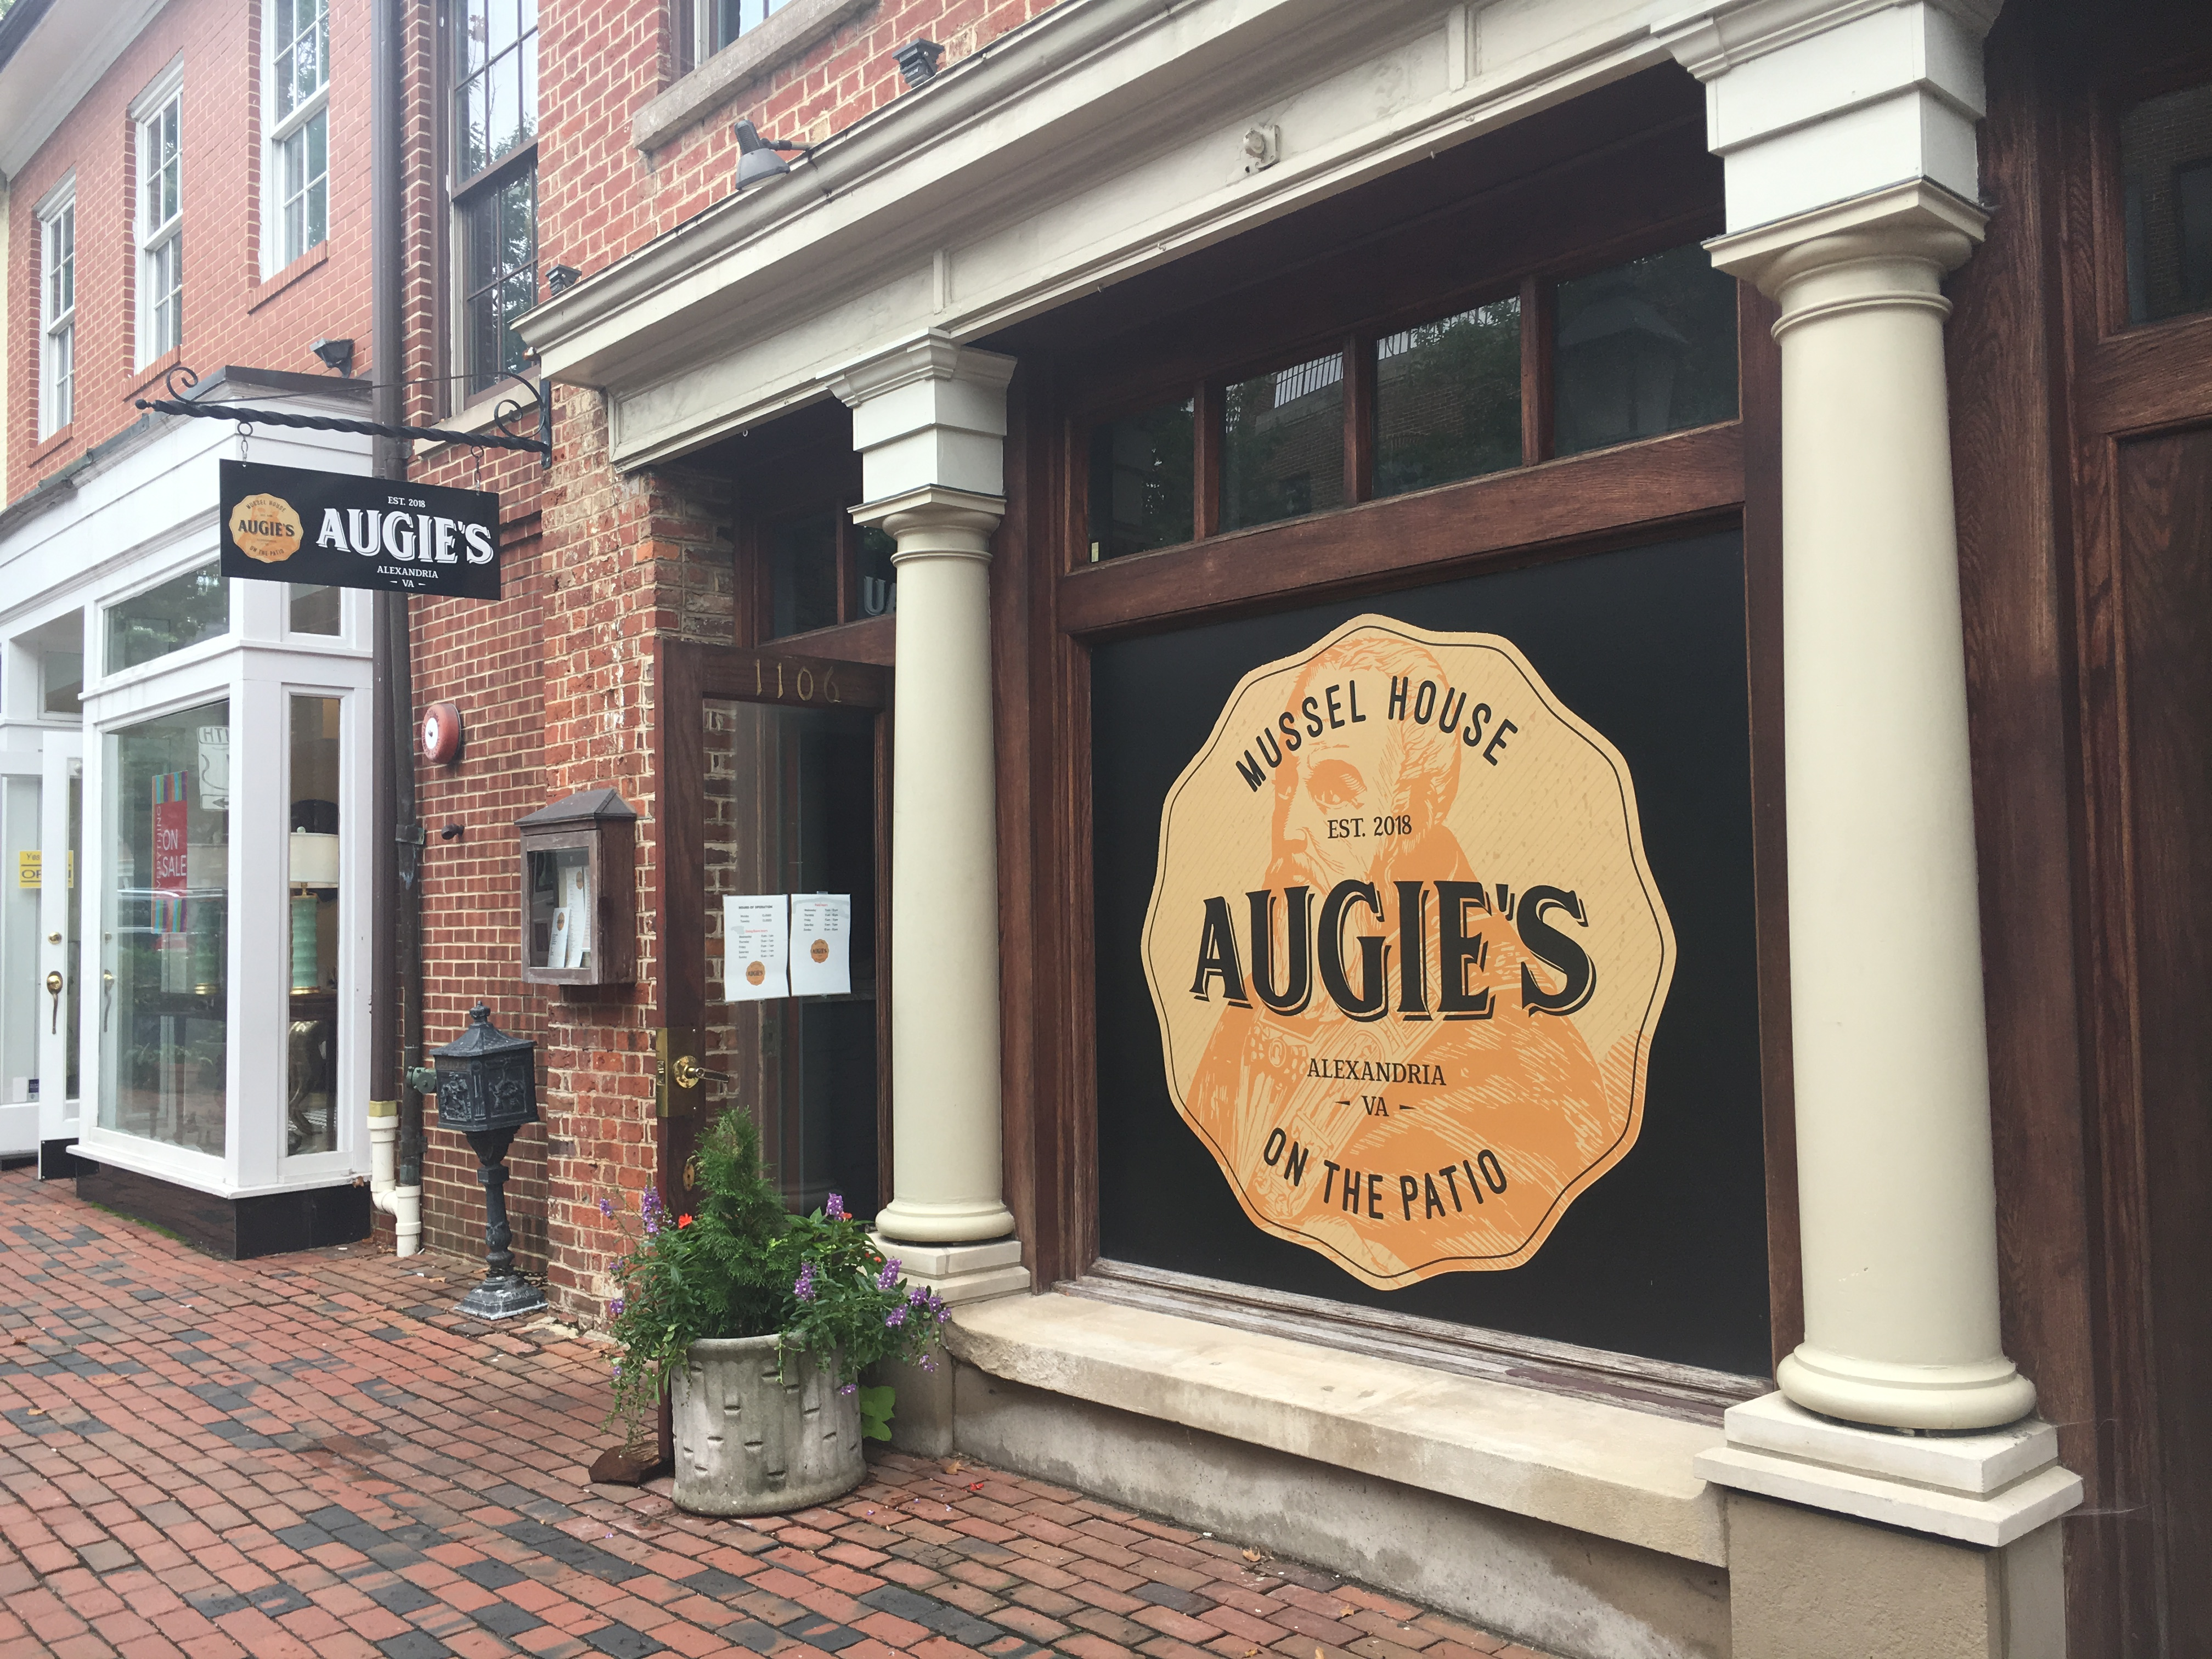 Augie's Mussel House